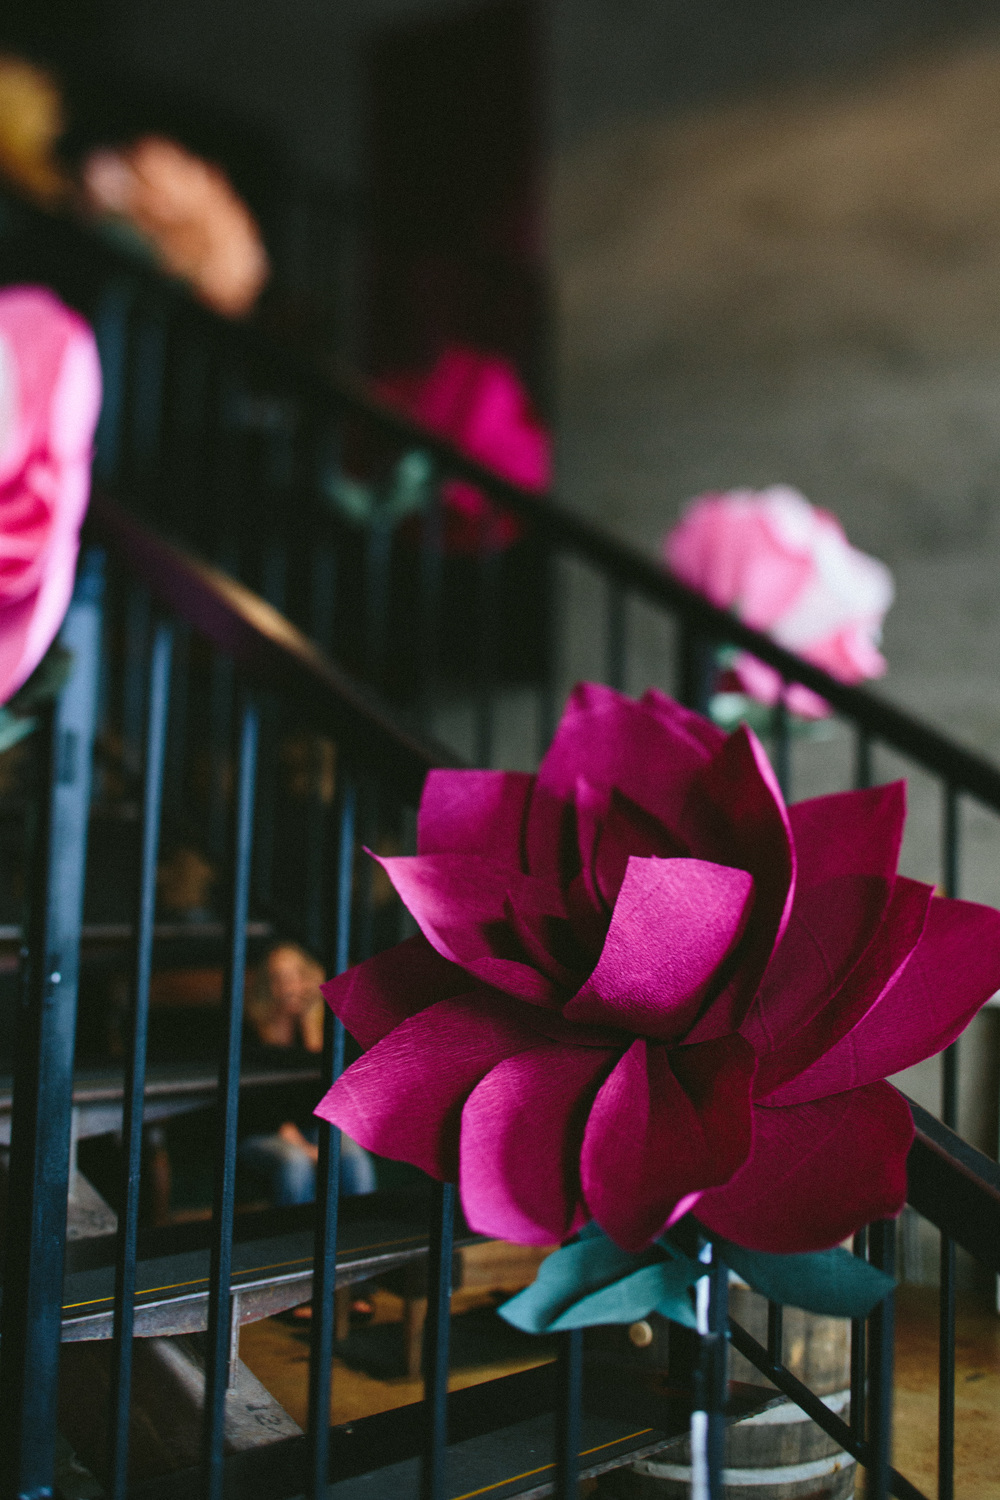 Paige-Newton-Photography-Wedding-Details-DIY-Paper-Flowers.jpg